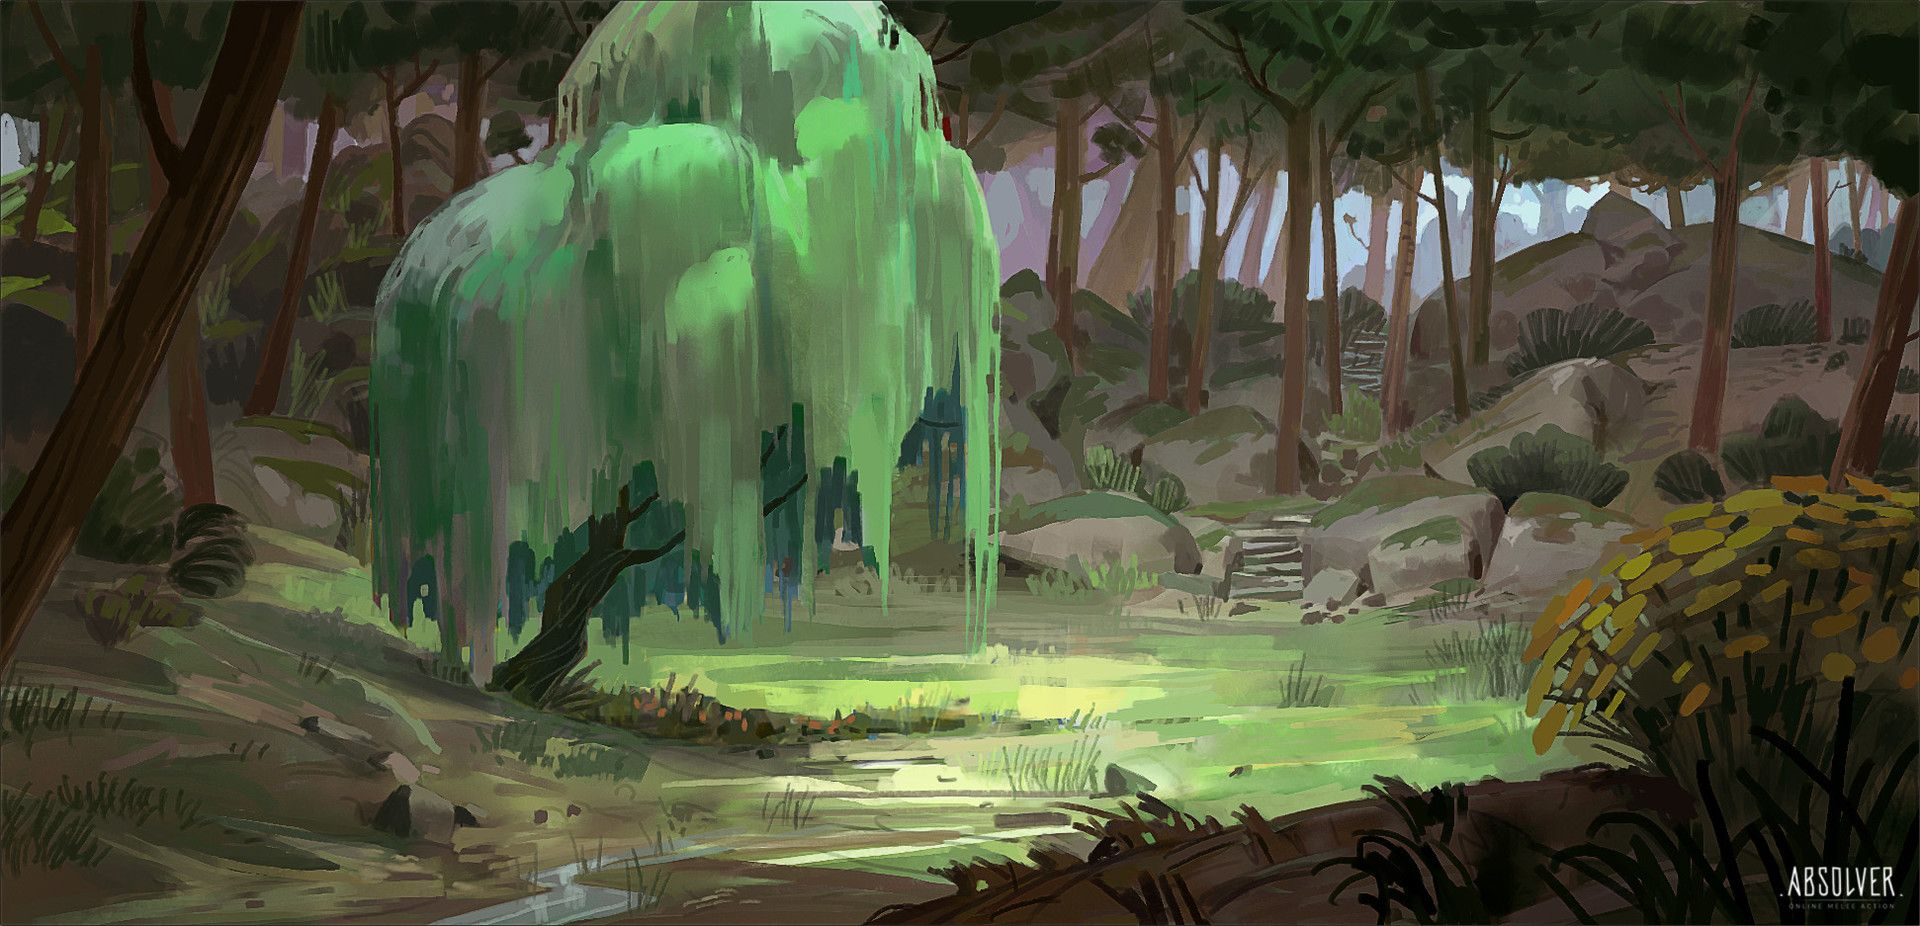 ArtStation - Absolver Forest environment sketches, Michel Donze ...